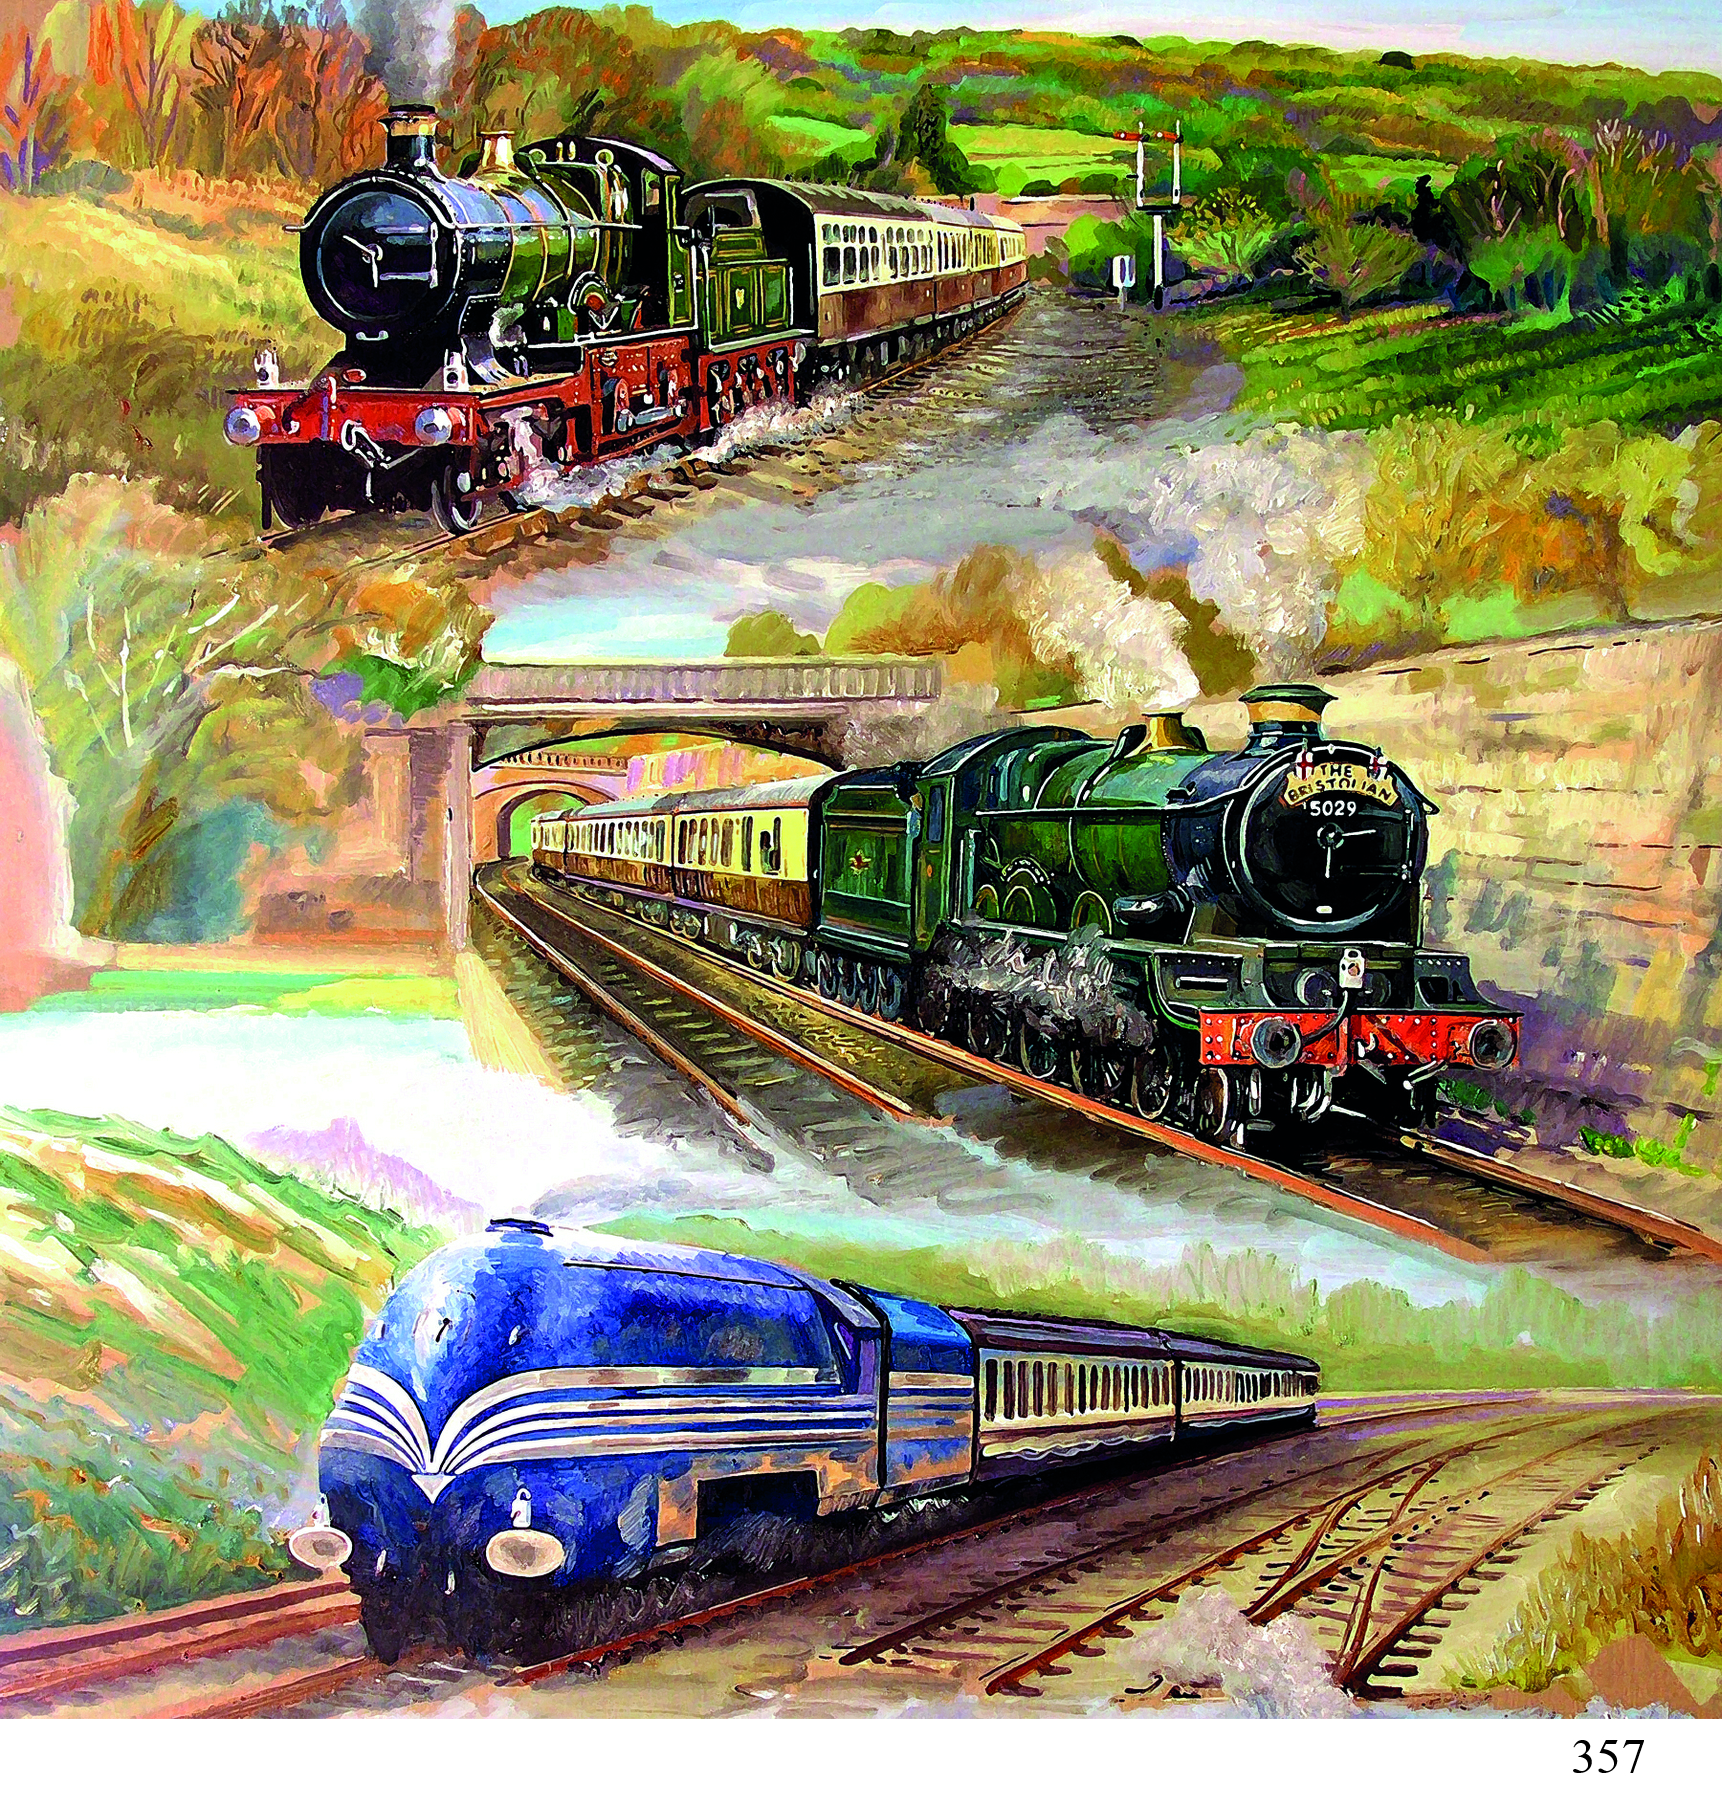 357 trains ArtyCards Oct 18.jpg